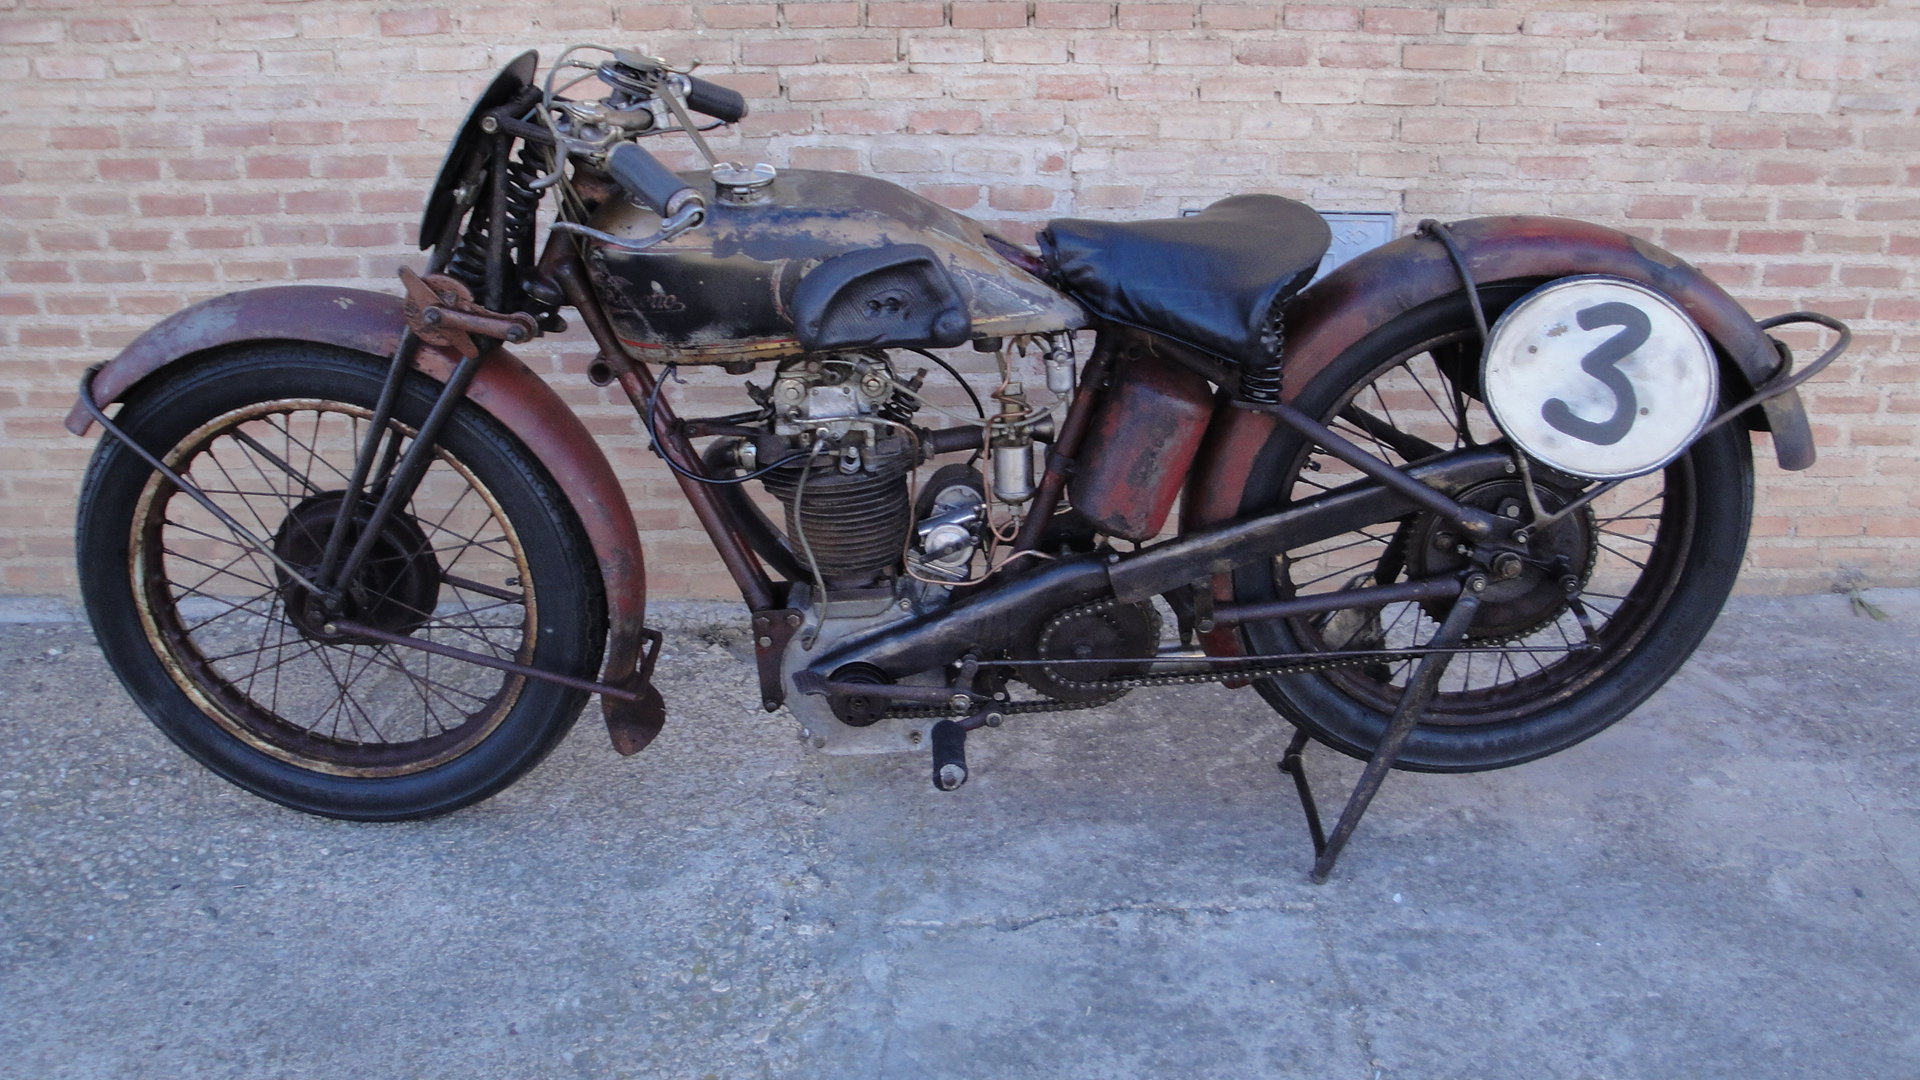 VELOCETTE KN 350cc OHC RACER YEAR 1929 For Sale (picture 2 of 6)